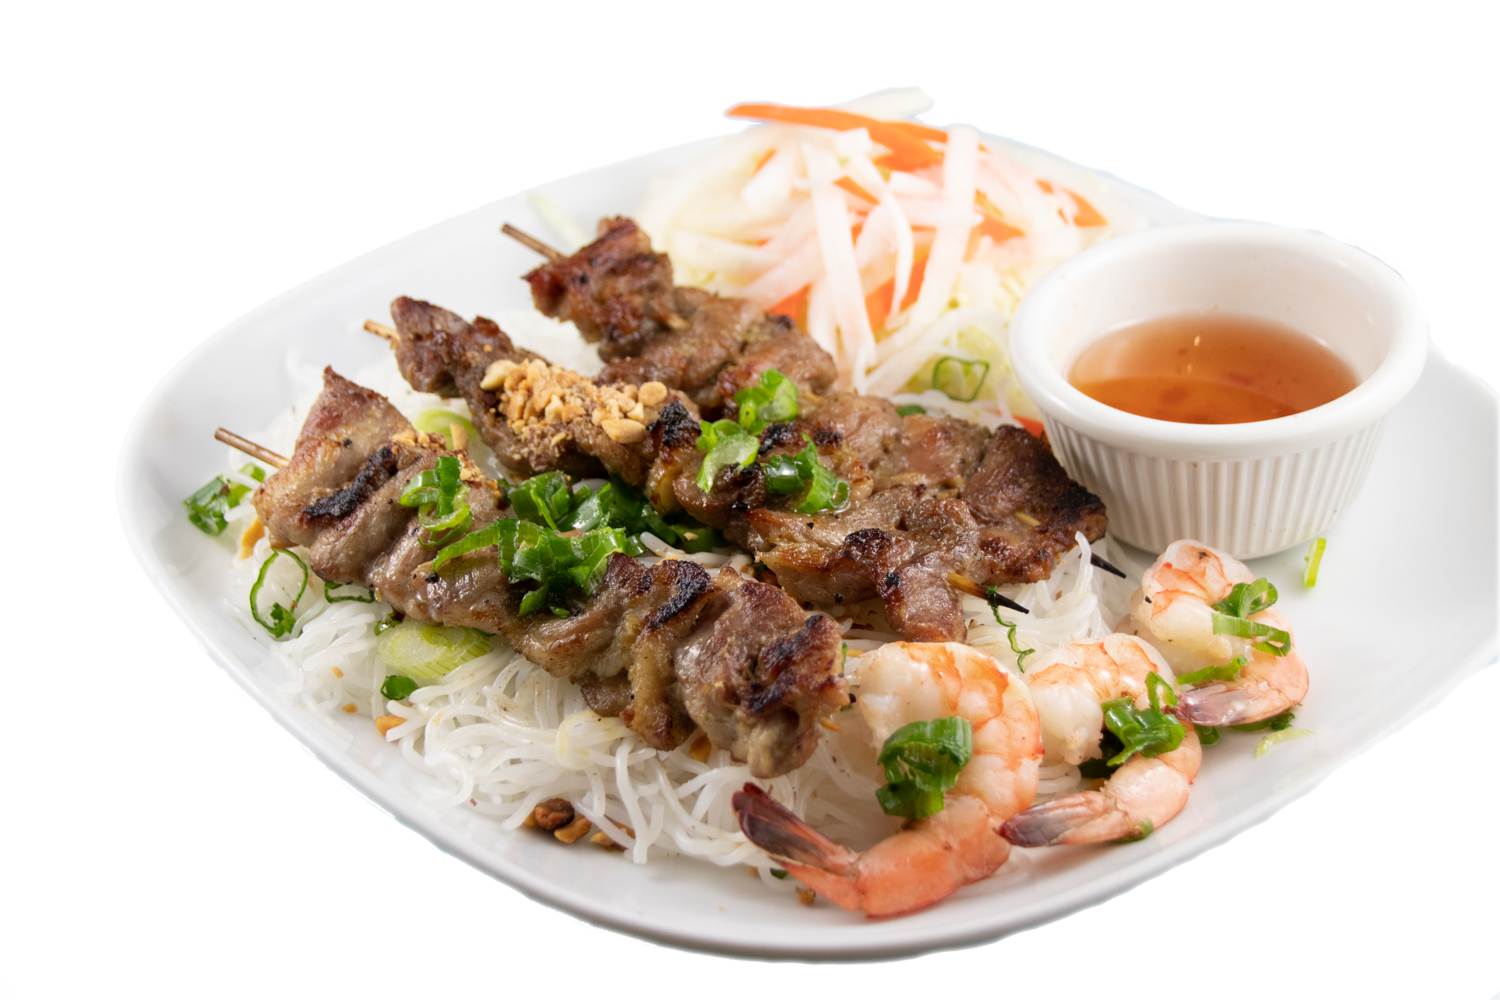 Bún tôm thịt nướng – Barbequed pork skewer and prawn with noodle